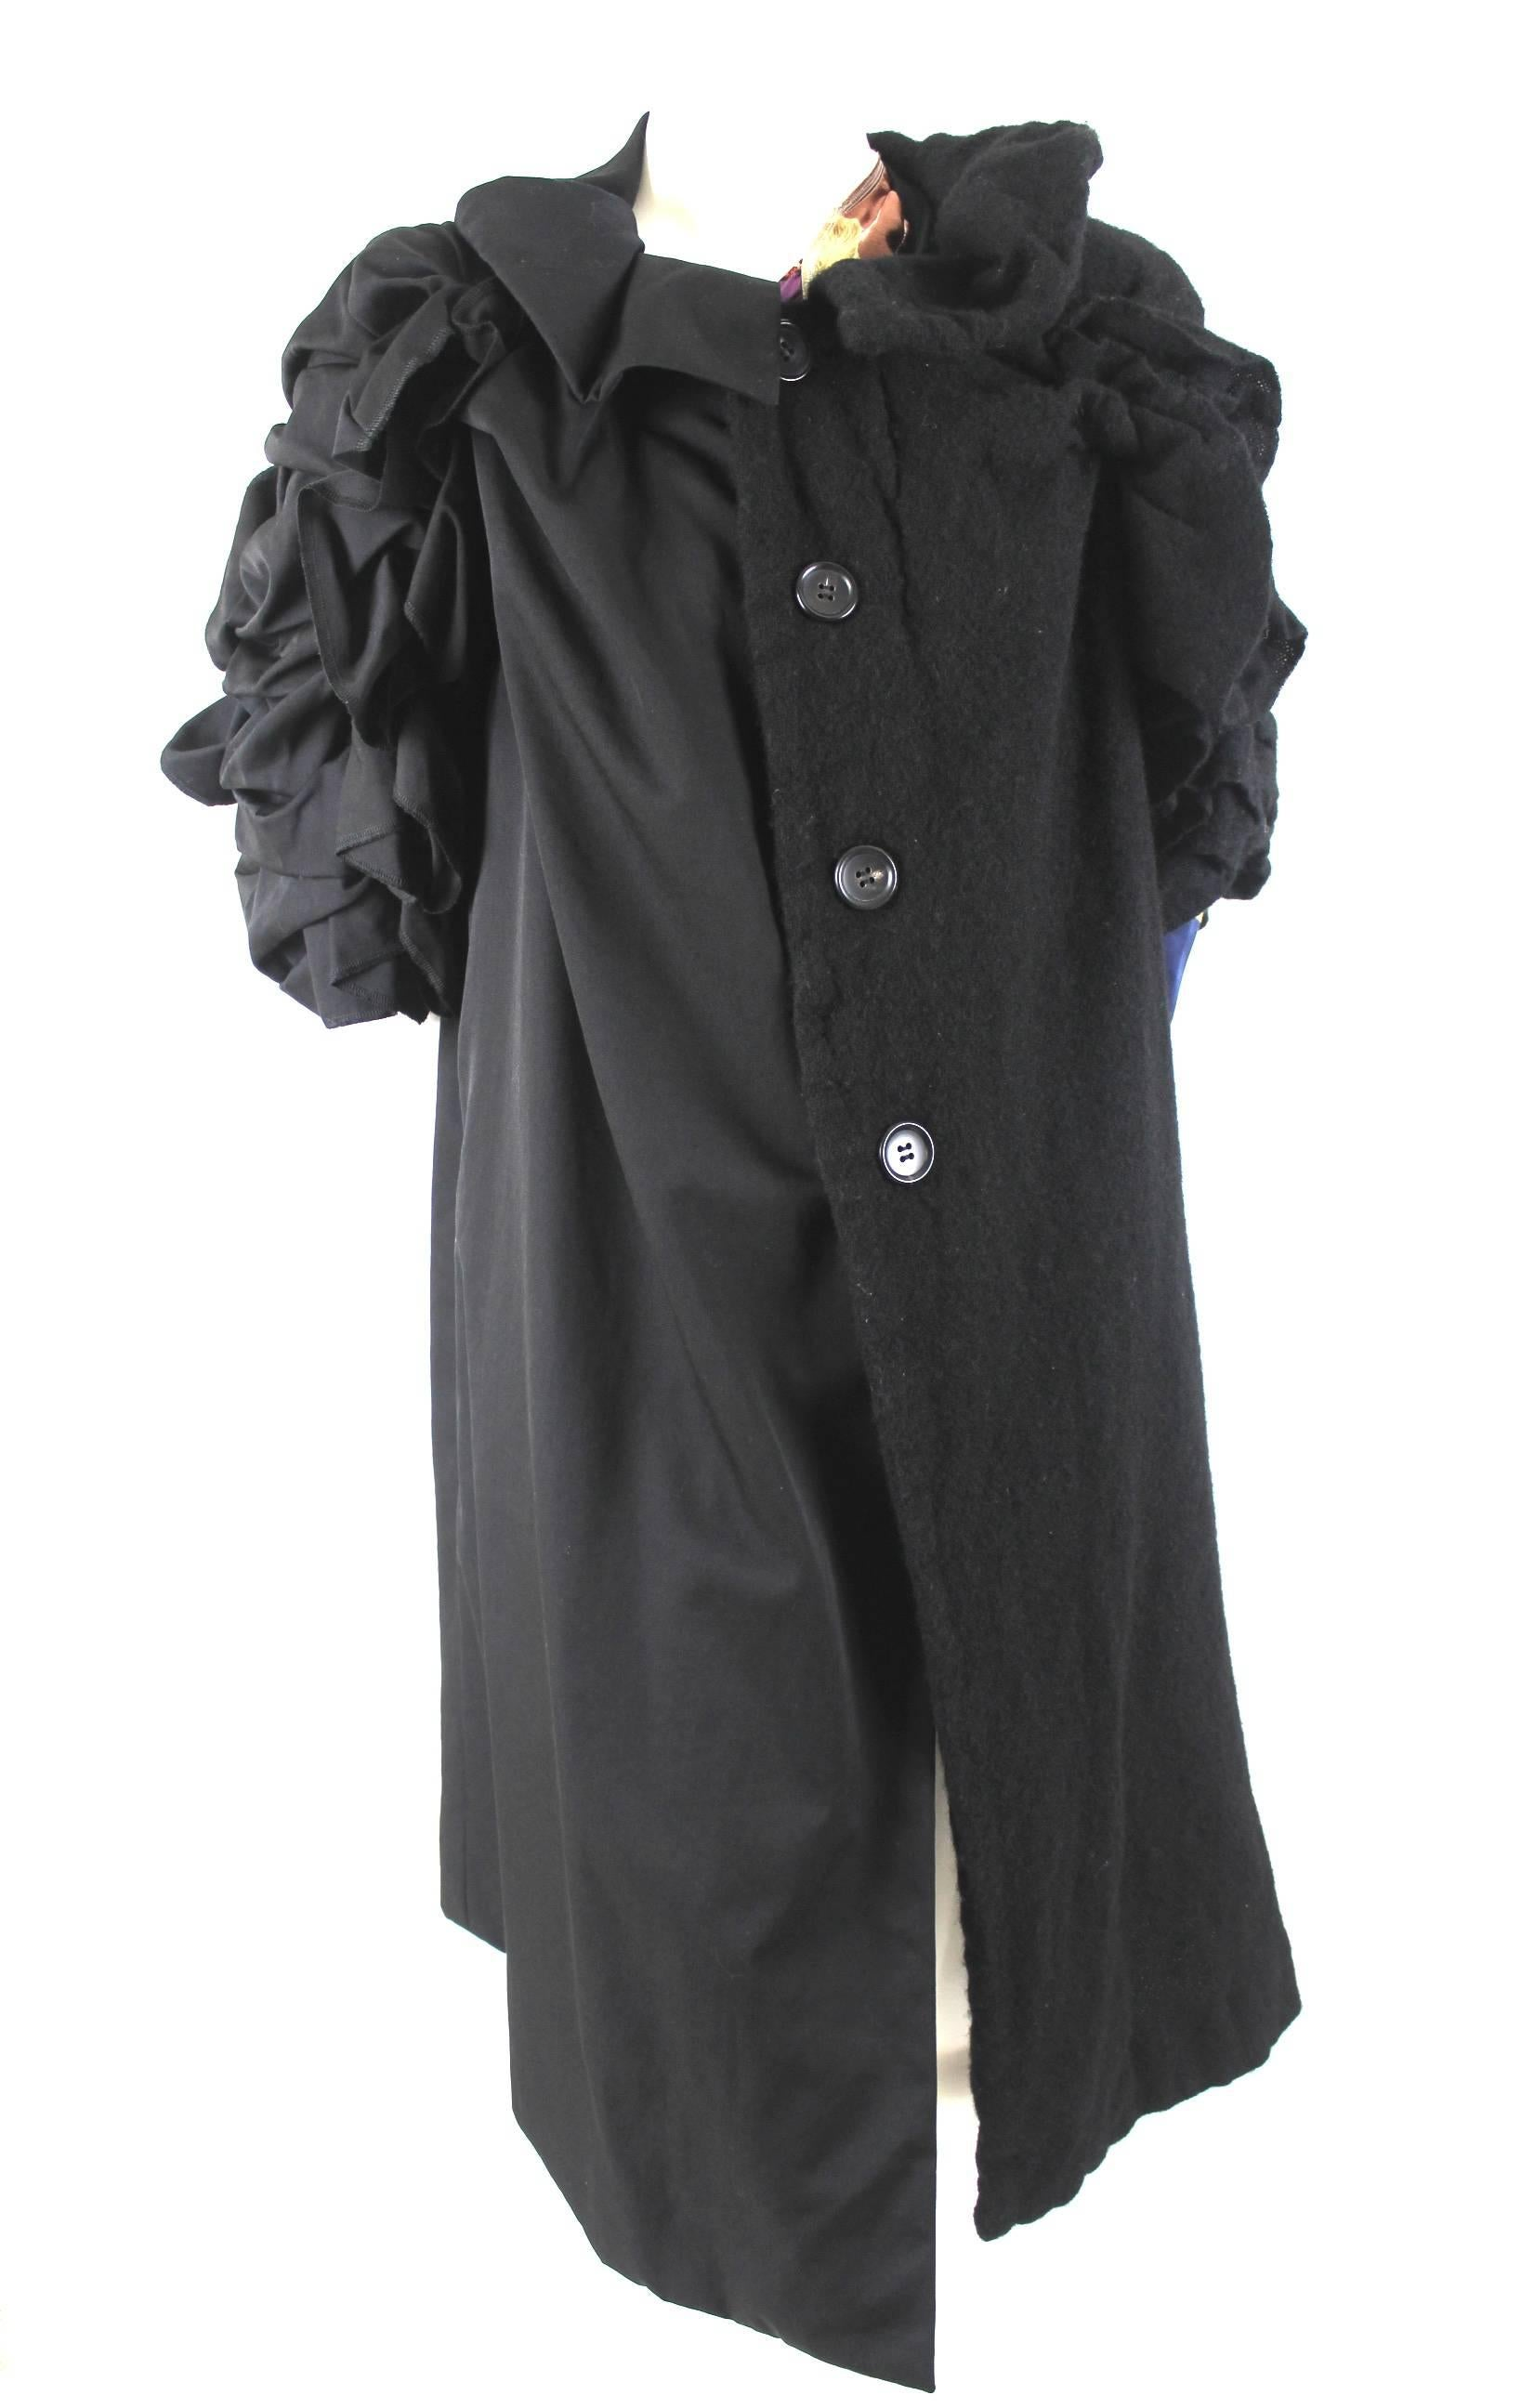 3e2448fbad1 Comme des Garcons AD 2011 A W Runway Left Half Wool Coat For Sale at 1stdibs